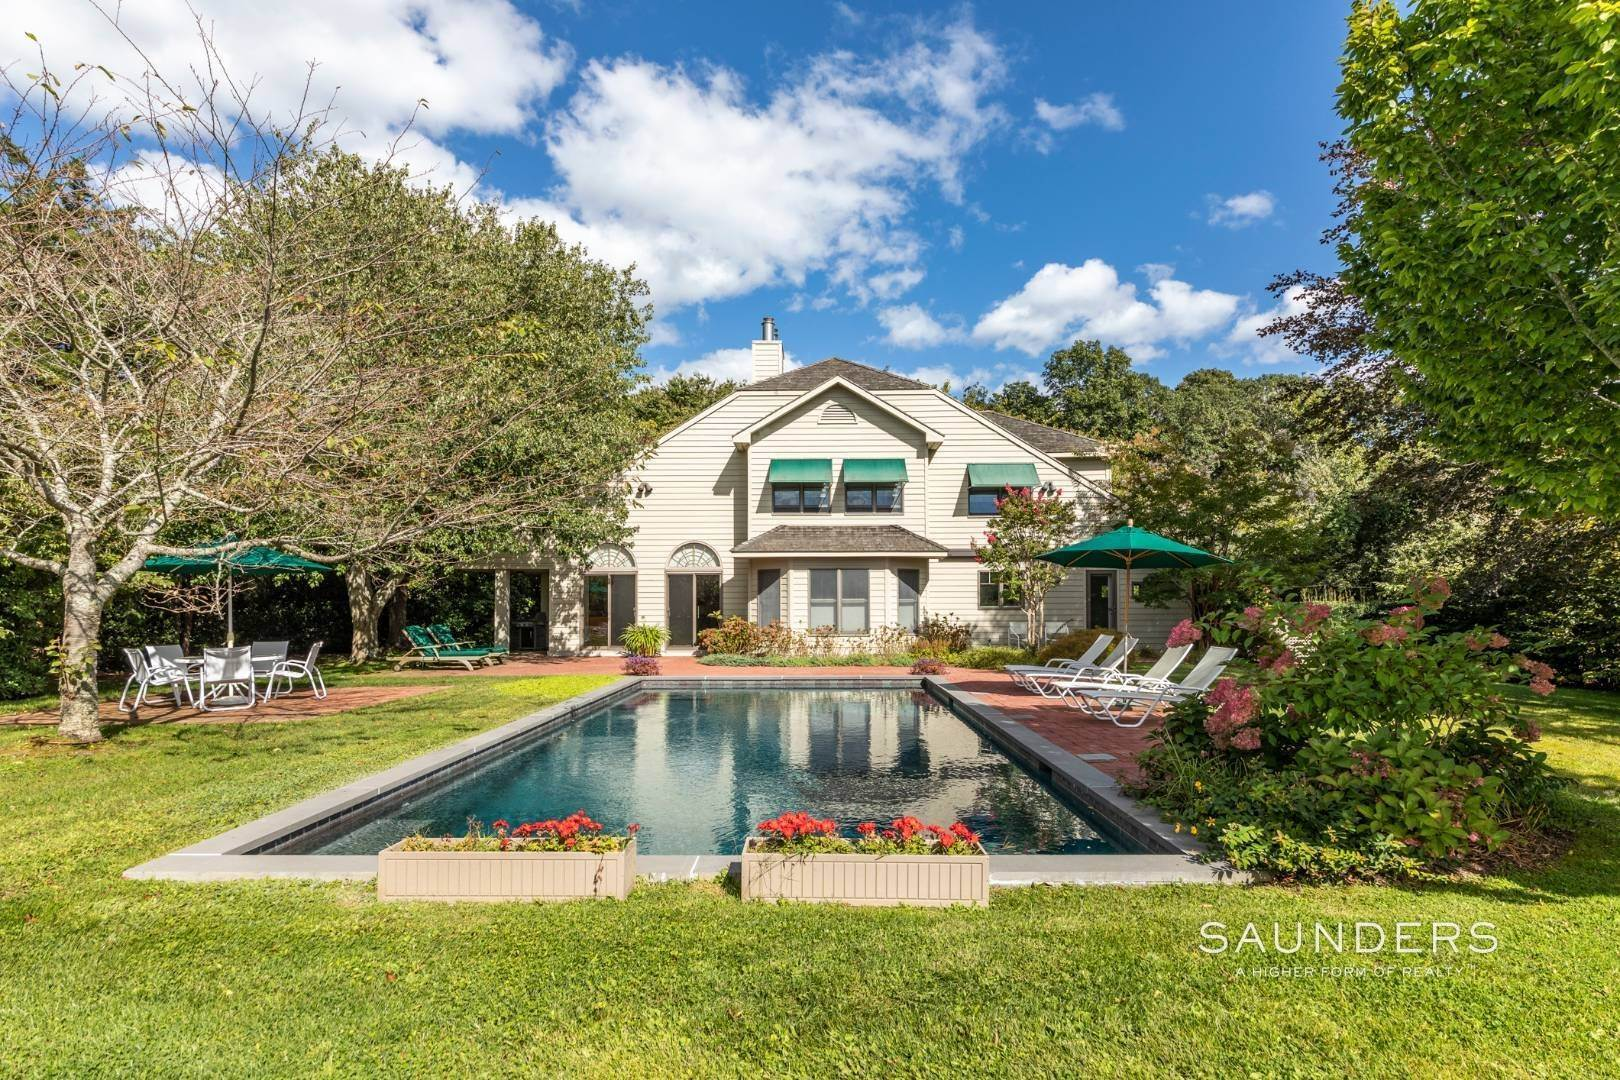 Single Family Homes for Sale at Welcome Home 11 Horseshoe Dr N, East Hampton, East Hampton Town, NY 11937